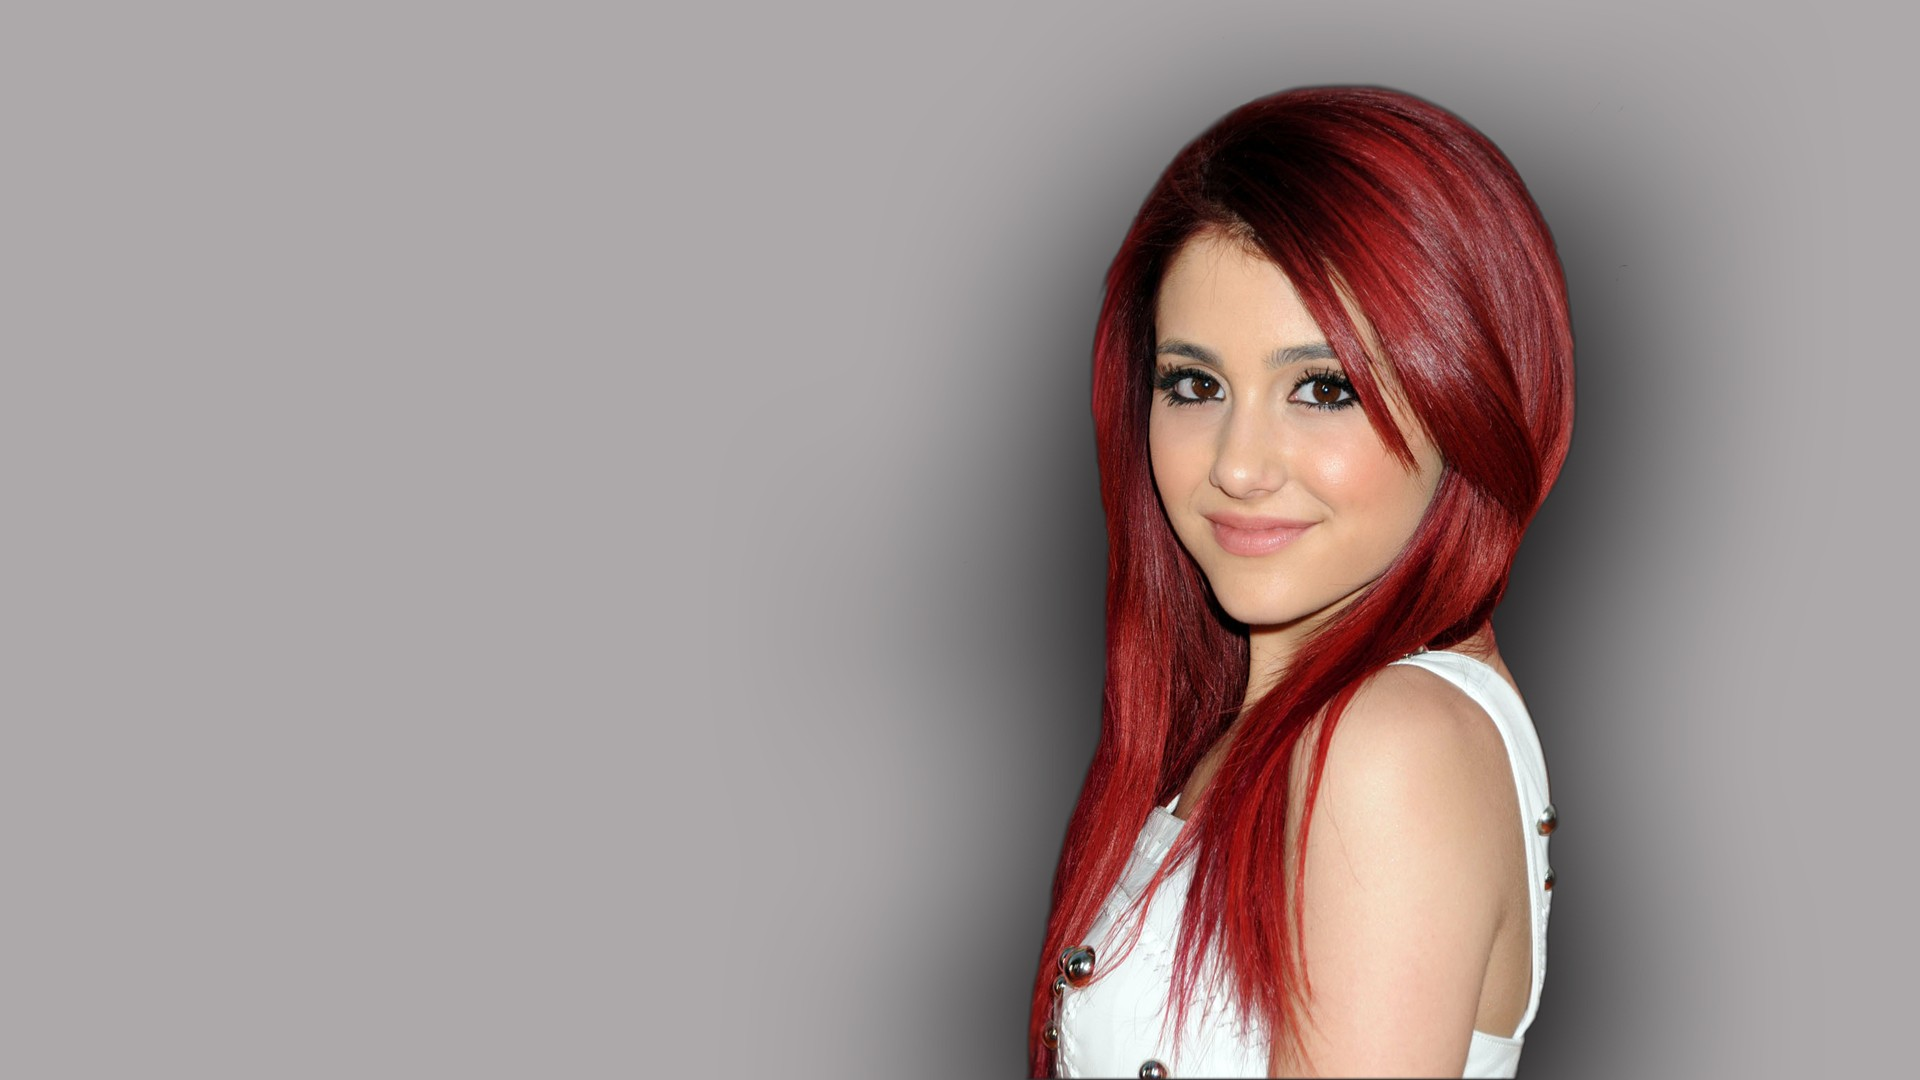 Hot naked redhead ariana grande agree, rather